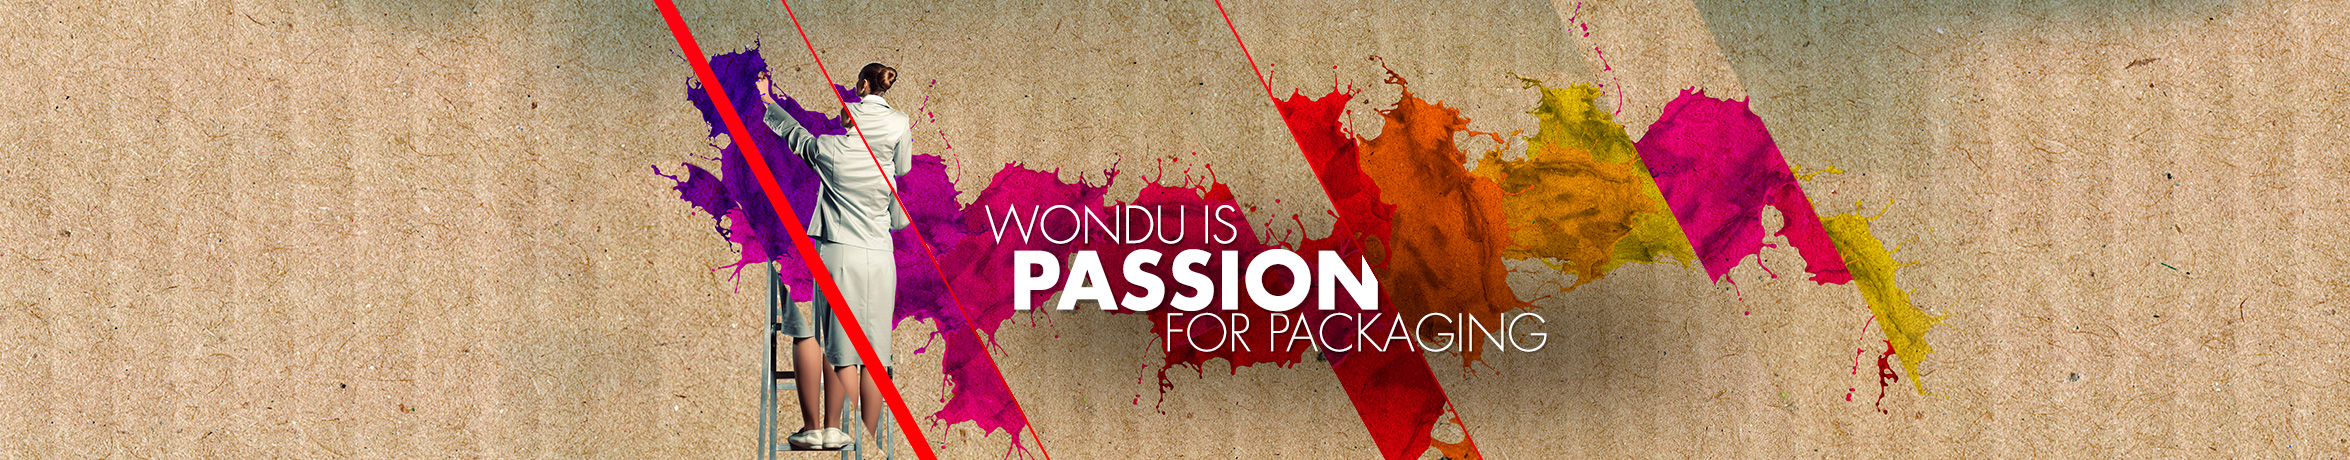 Wondu is passion for packaging